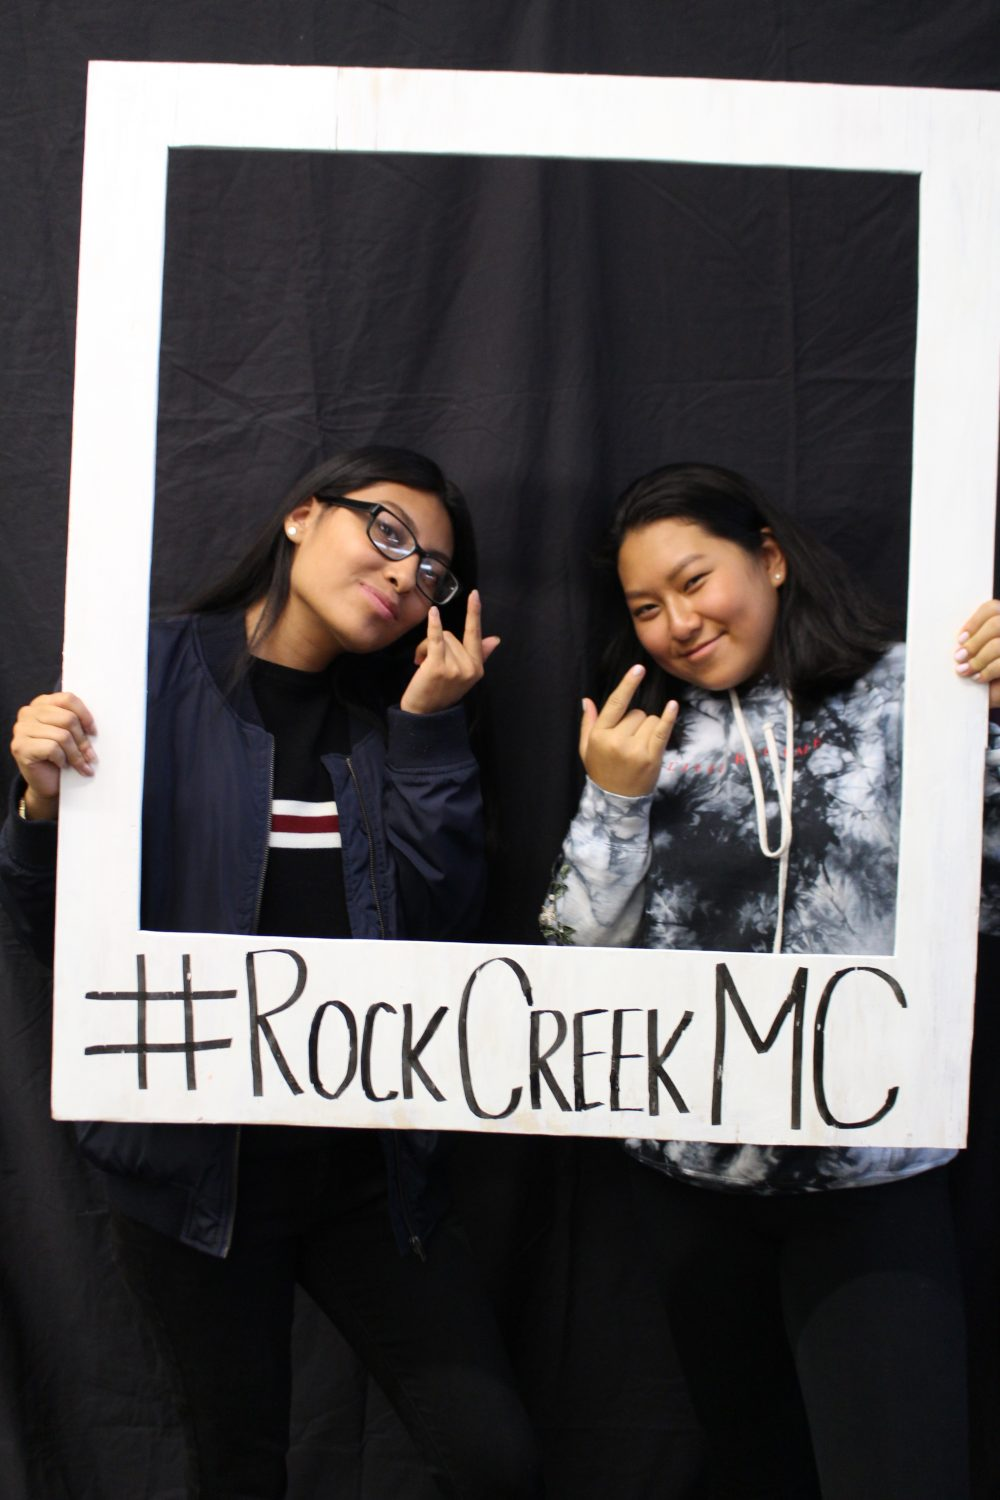 Two students holding up a fake Polaroid frame around their faces with the hashtag #RockCreekMC